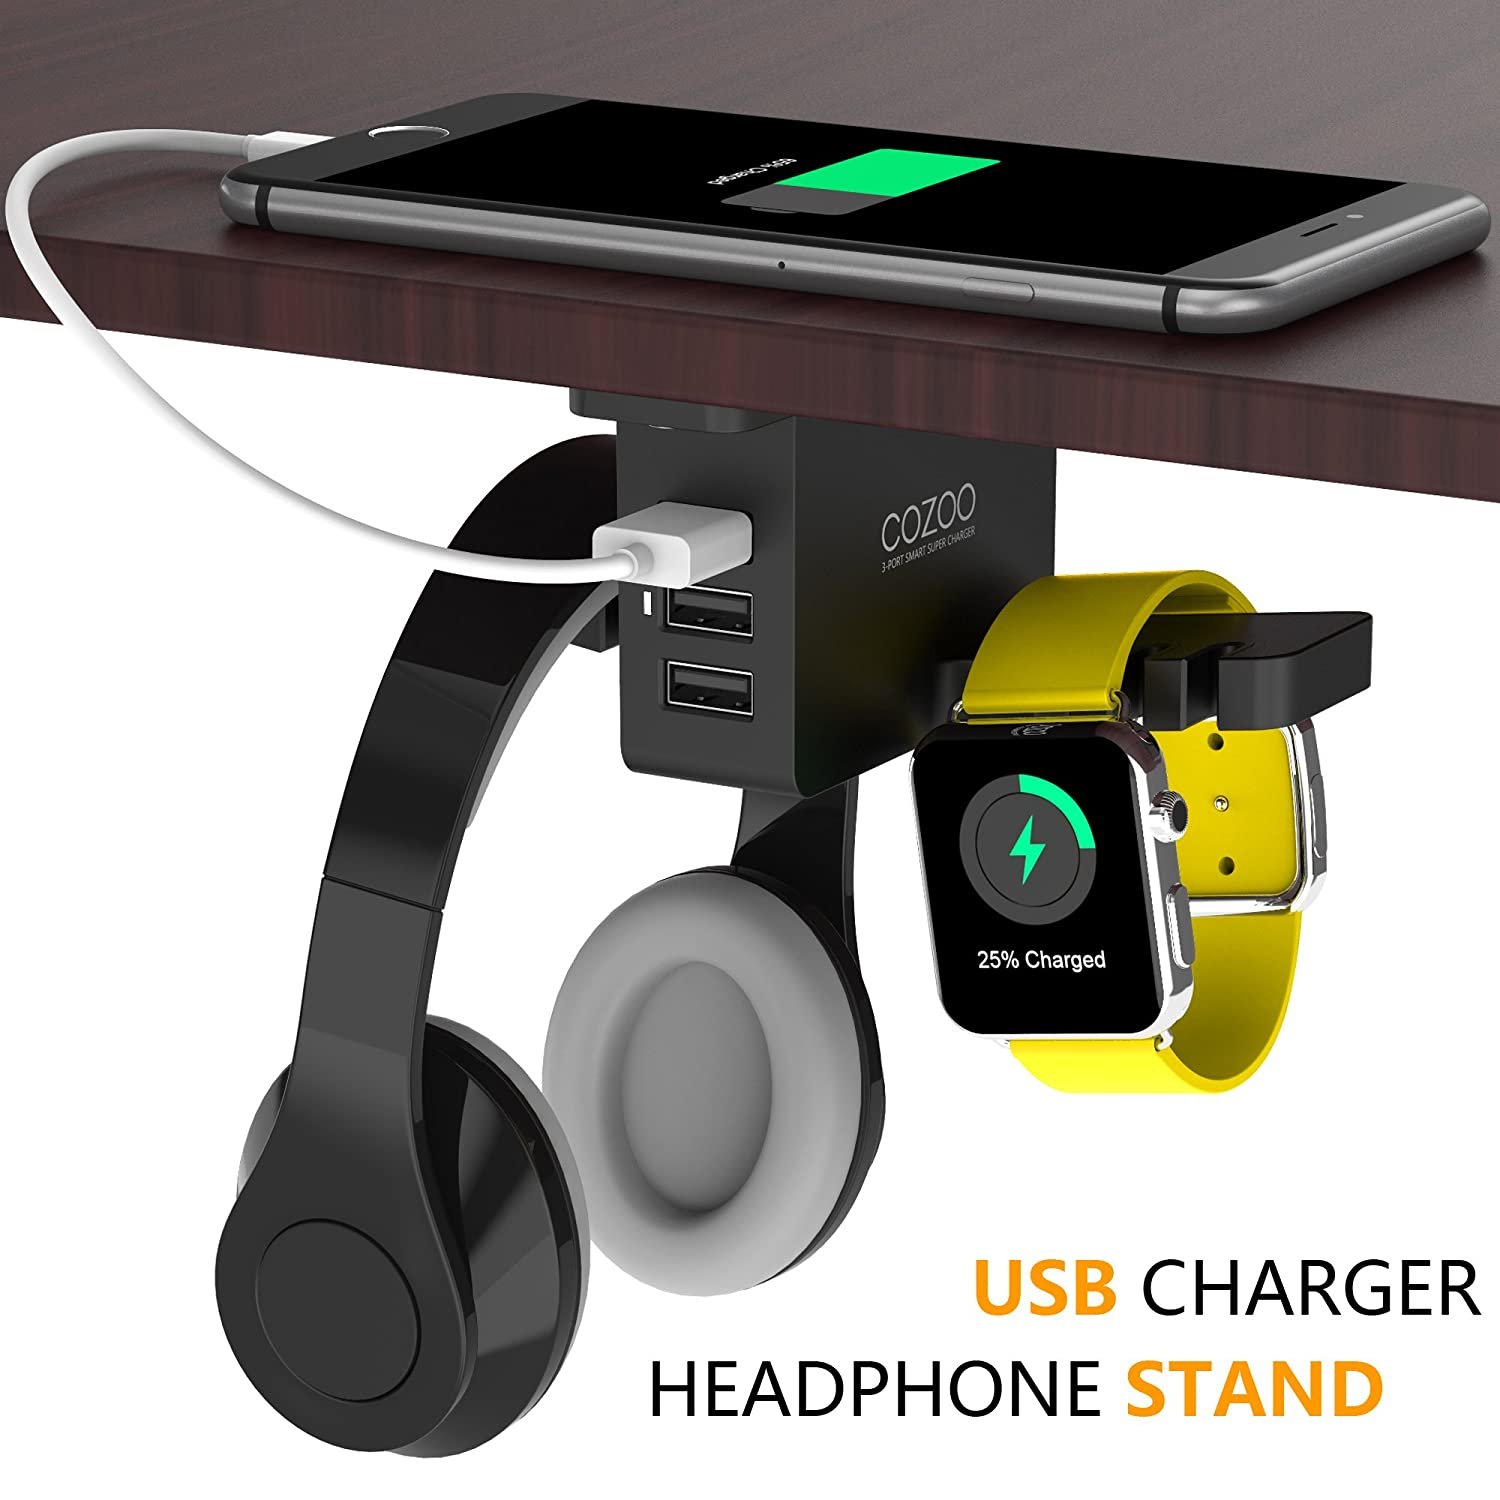 Headphone Stand With Usb Charger Cozoo Under Desk Headset Holder Mount With 3 Port Usb Charging Station And Apple Watch Stand Smart Watch Charging Dock Dual Earphone Hanger Hook For All Headphones by Amazon